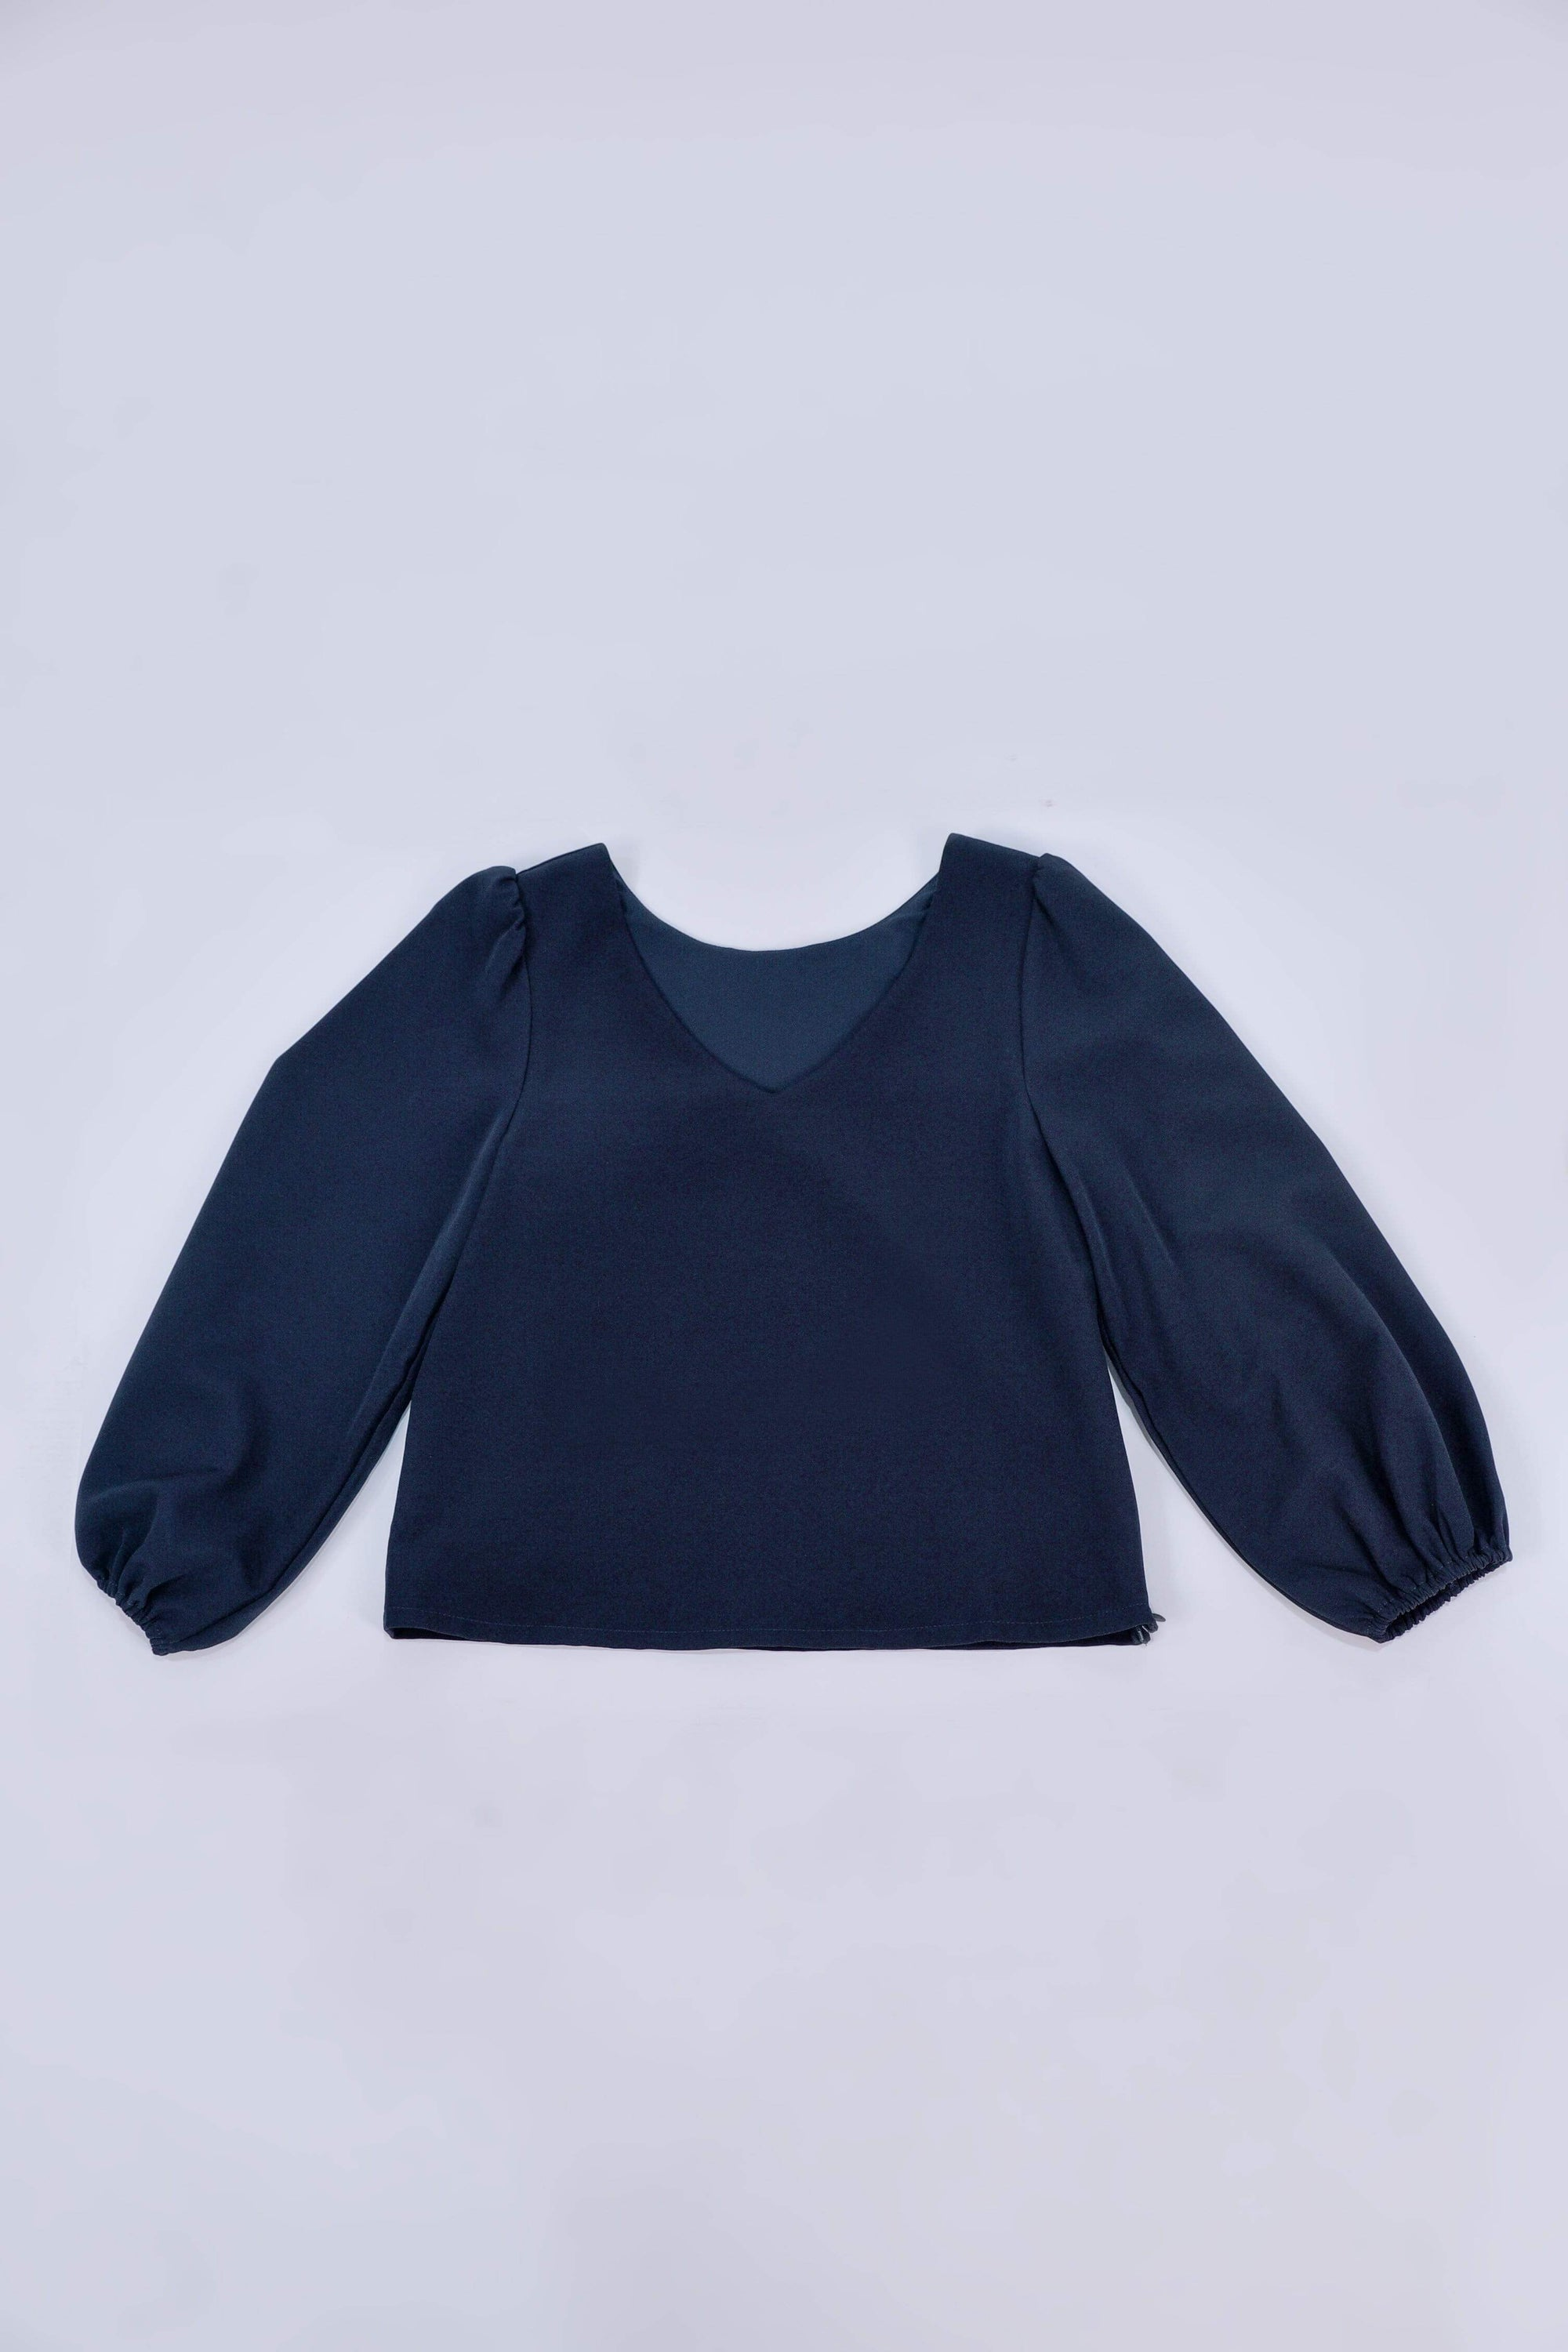 JANICKA TWO-WAY BALLOON SLEEVED TOP IN NAVY